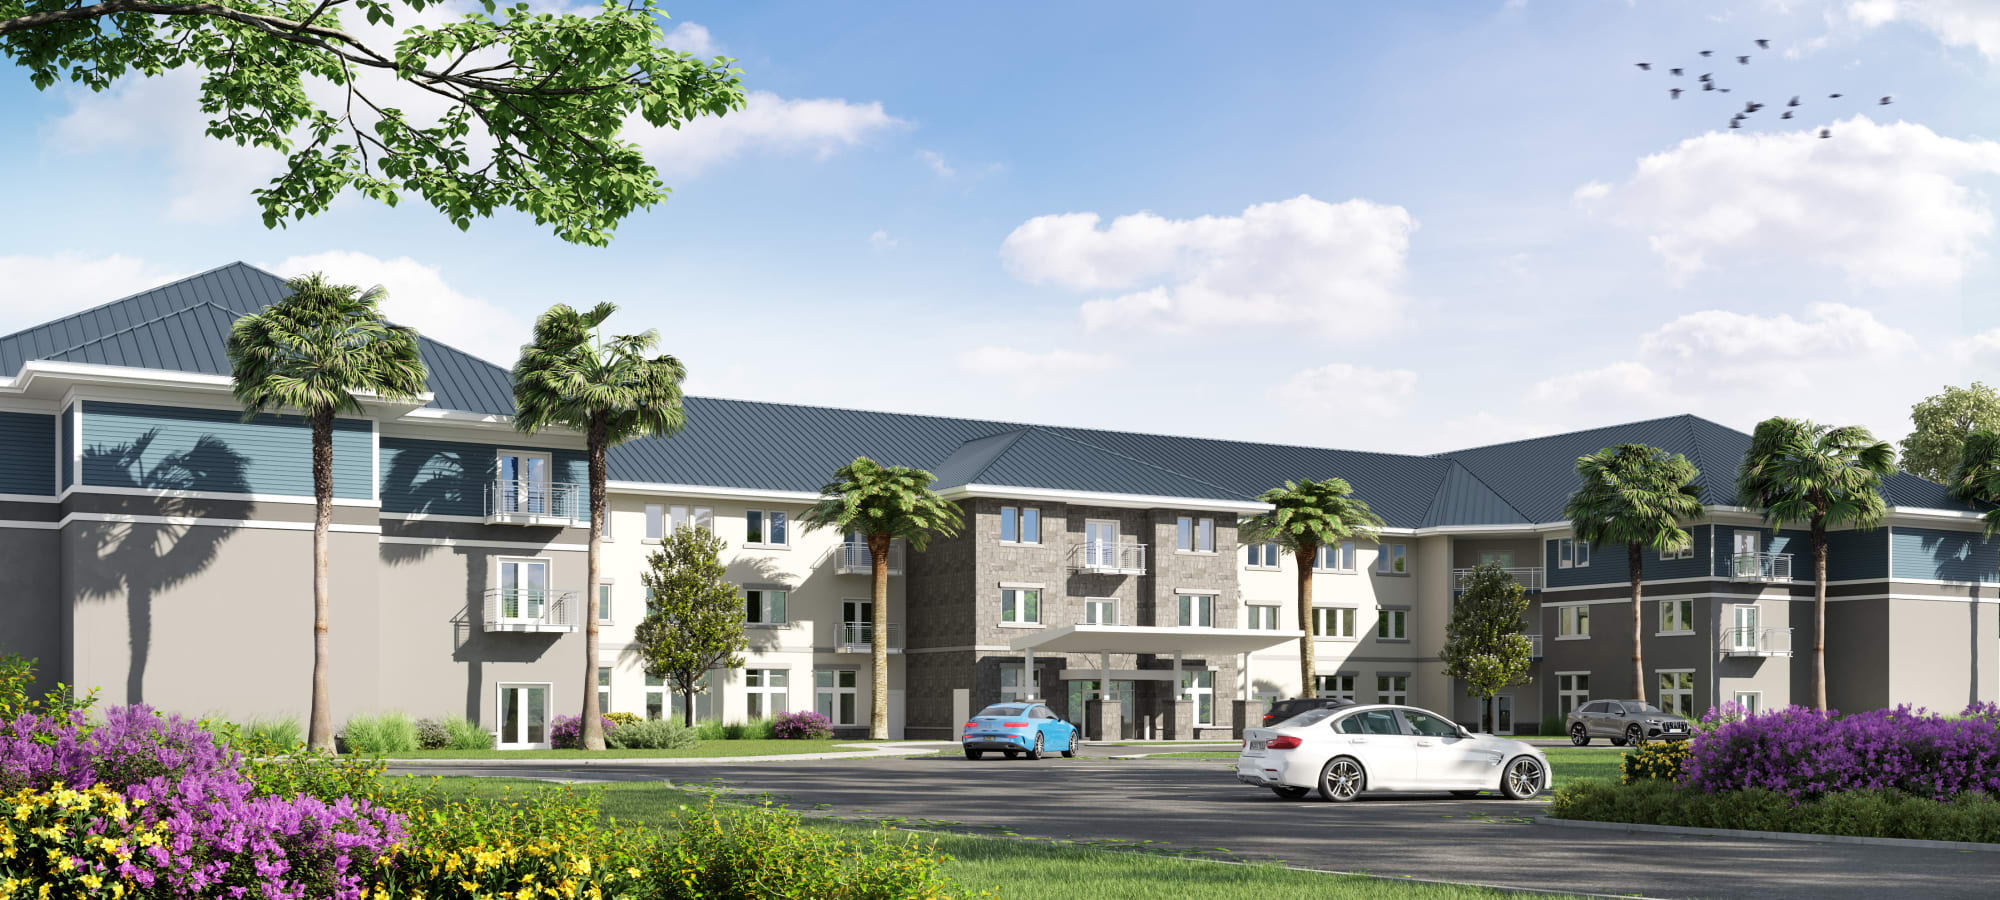 Exterior artist's rendering of The Landings at Gentry Park , Independent Living